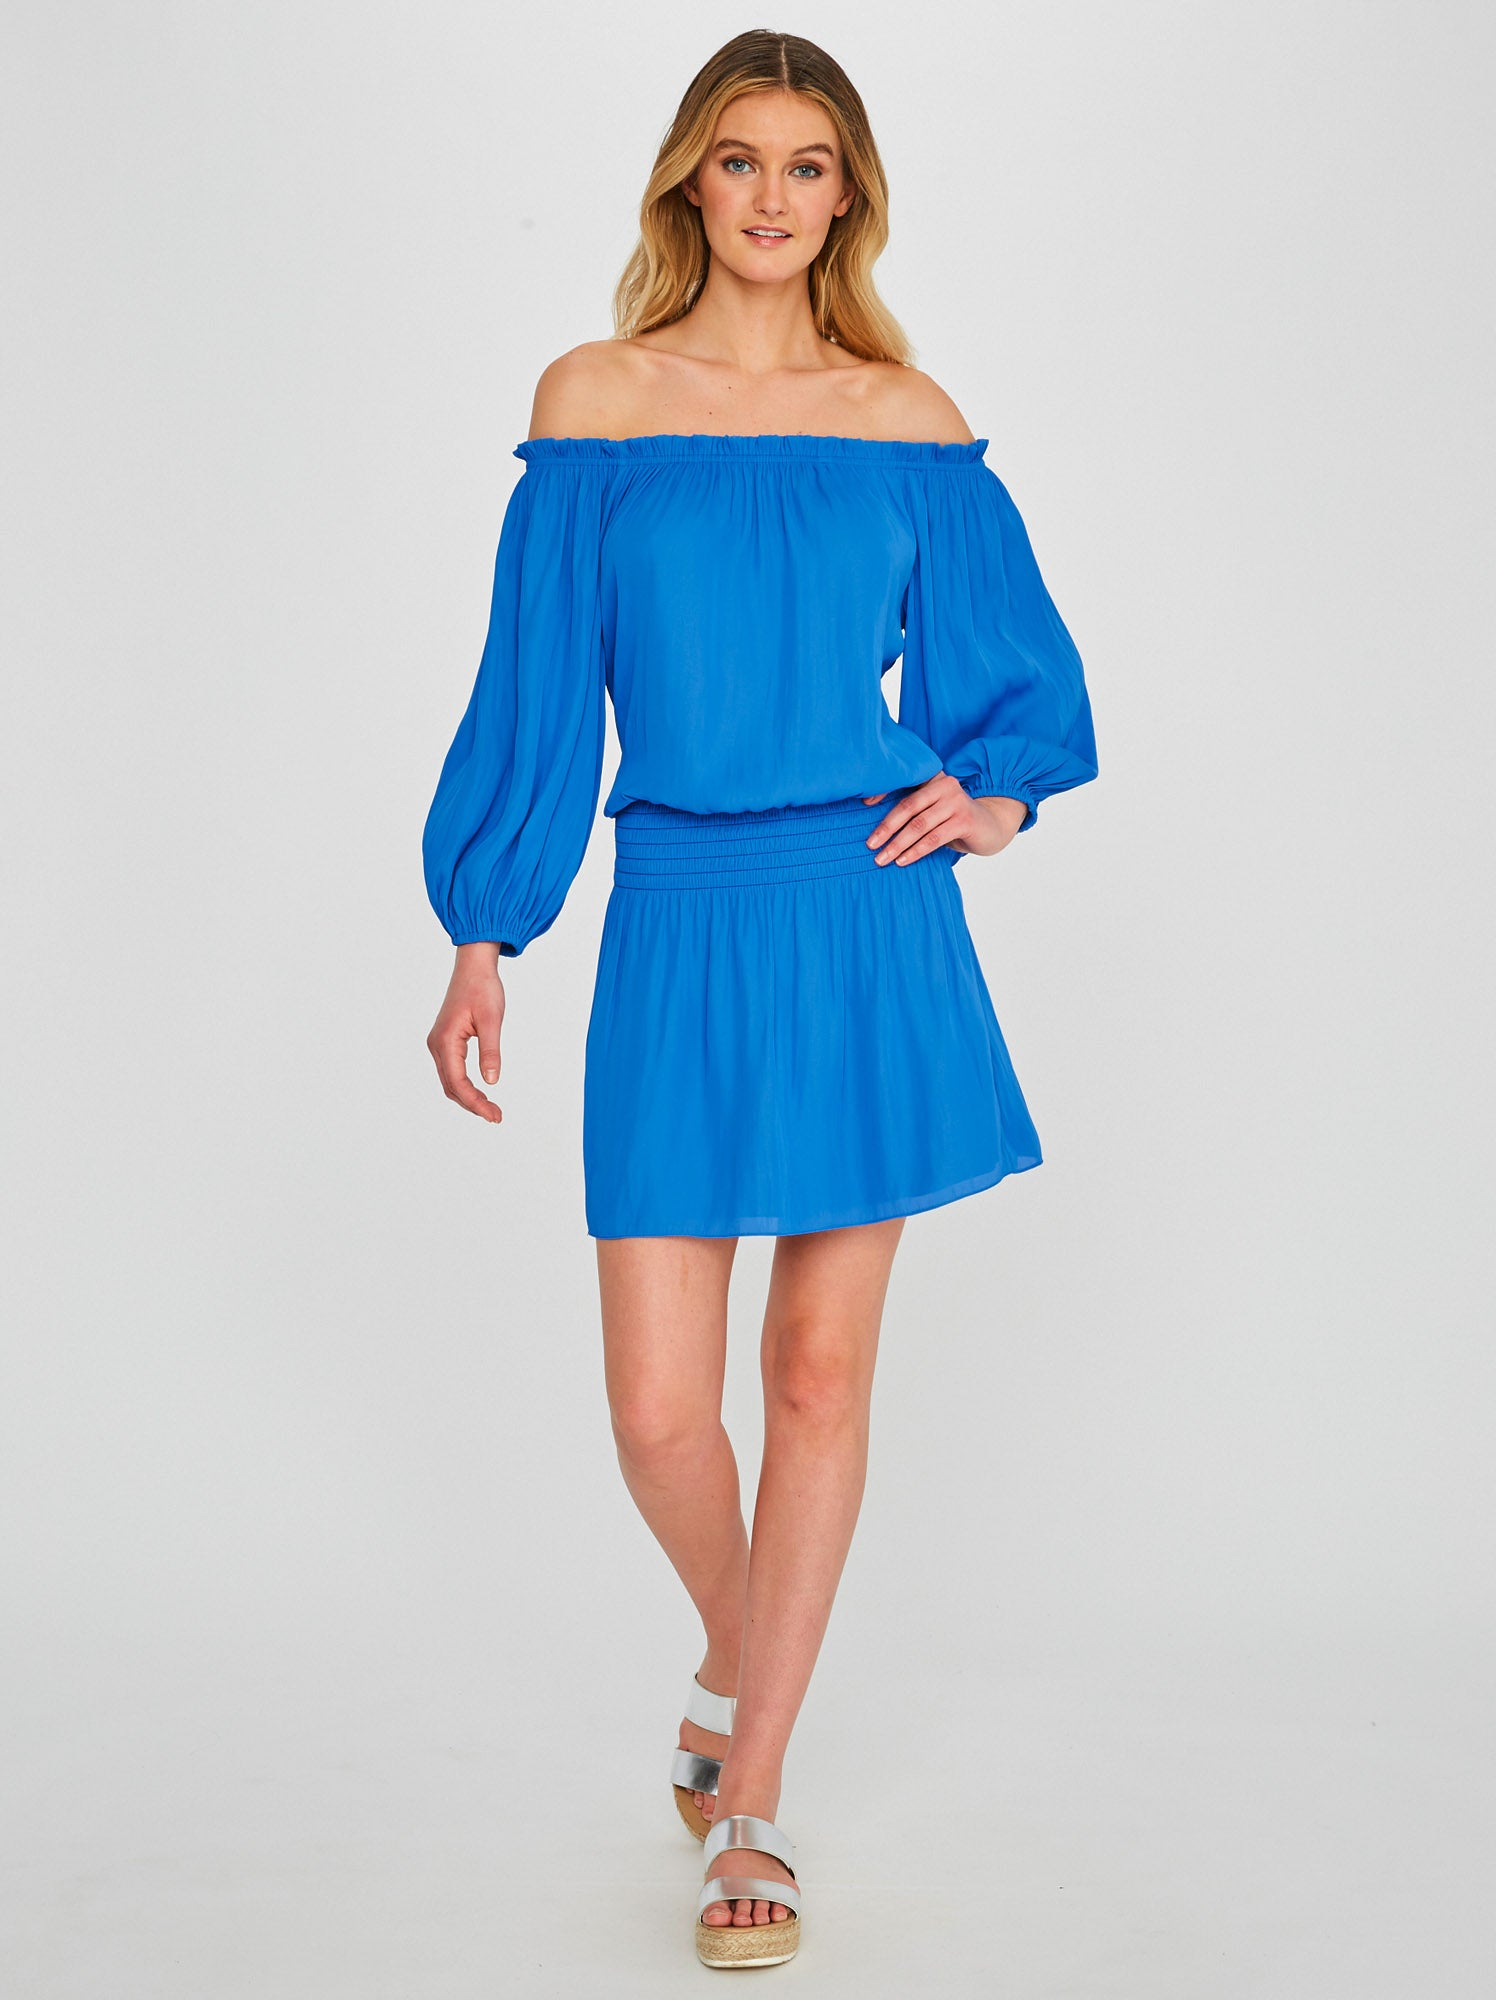 Gianna Dress - Alice & Trixie